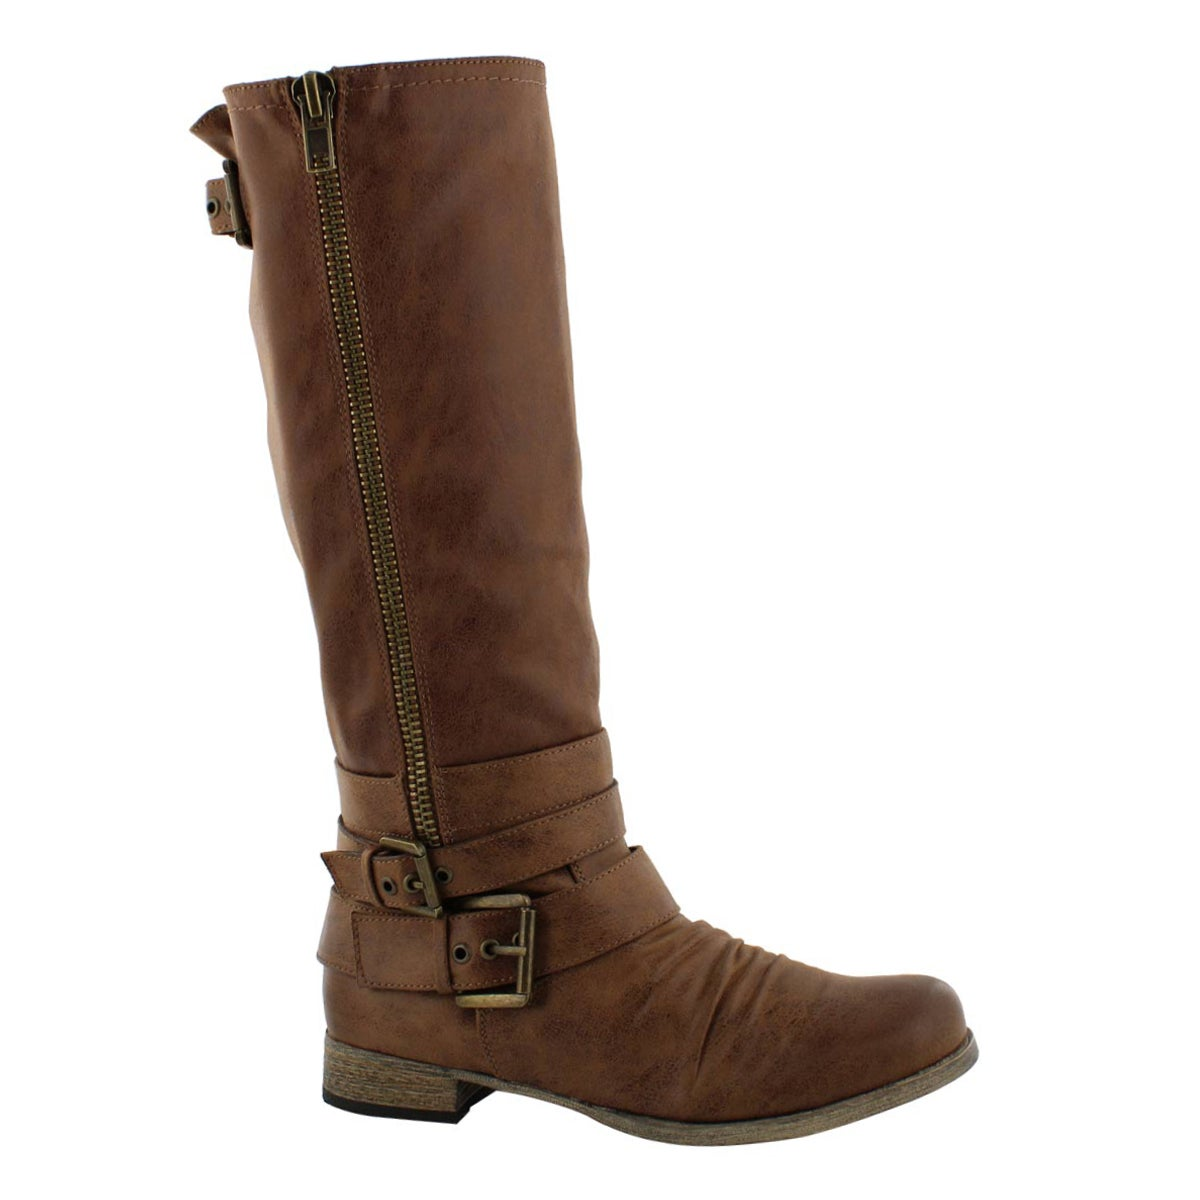 hot-selling genuine newest style of outlet boutique Women's TRISS brown riding boots